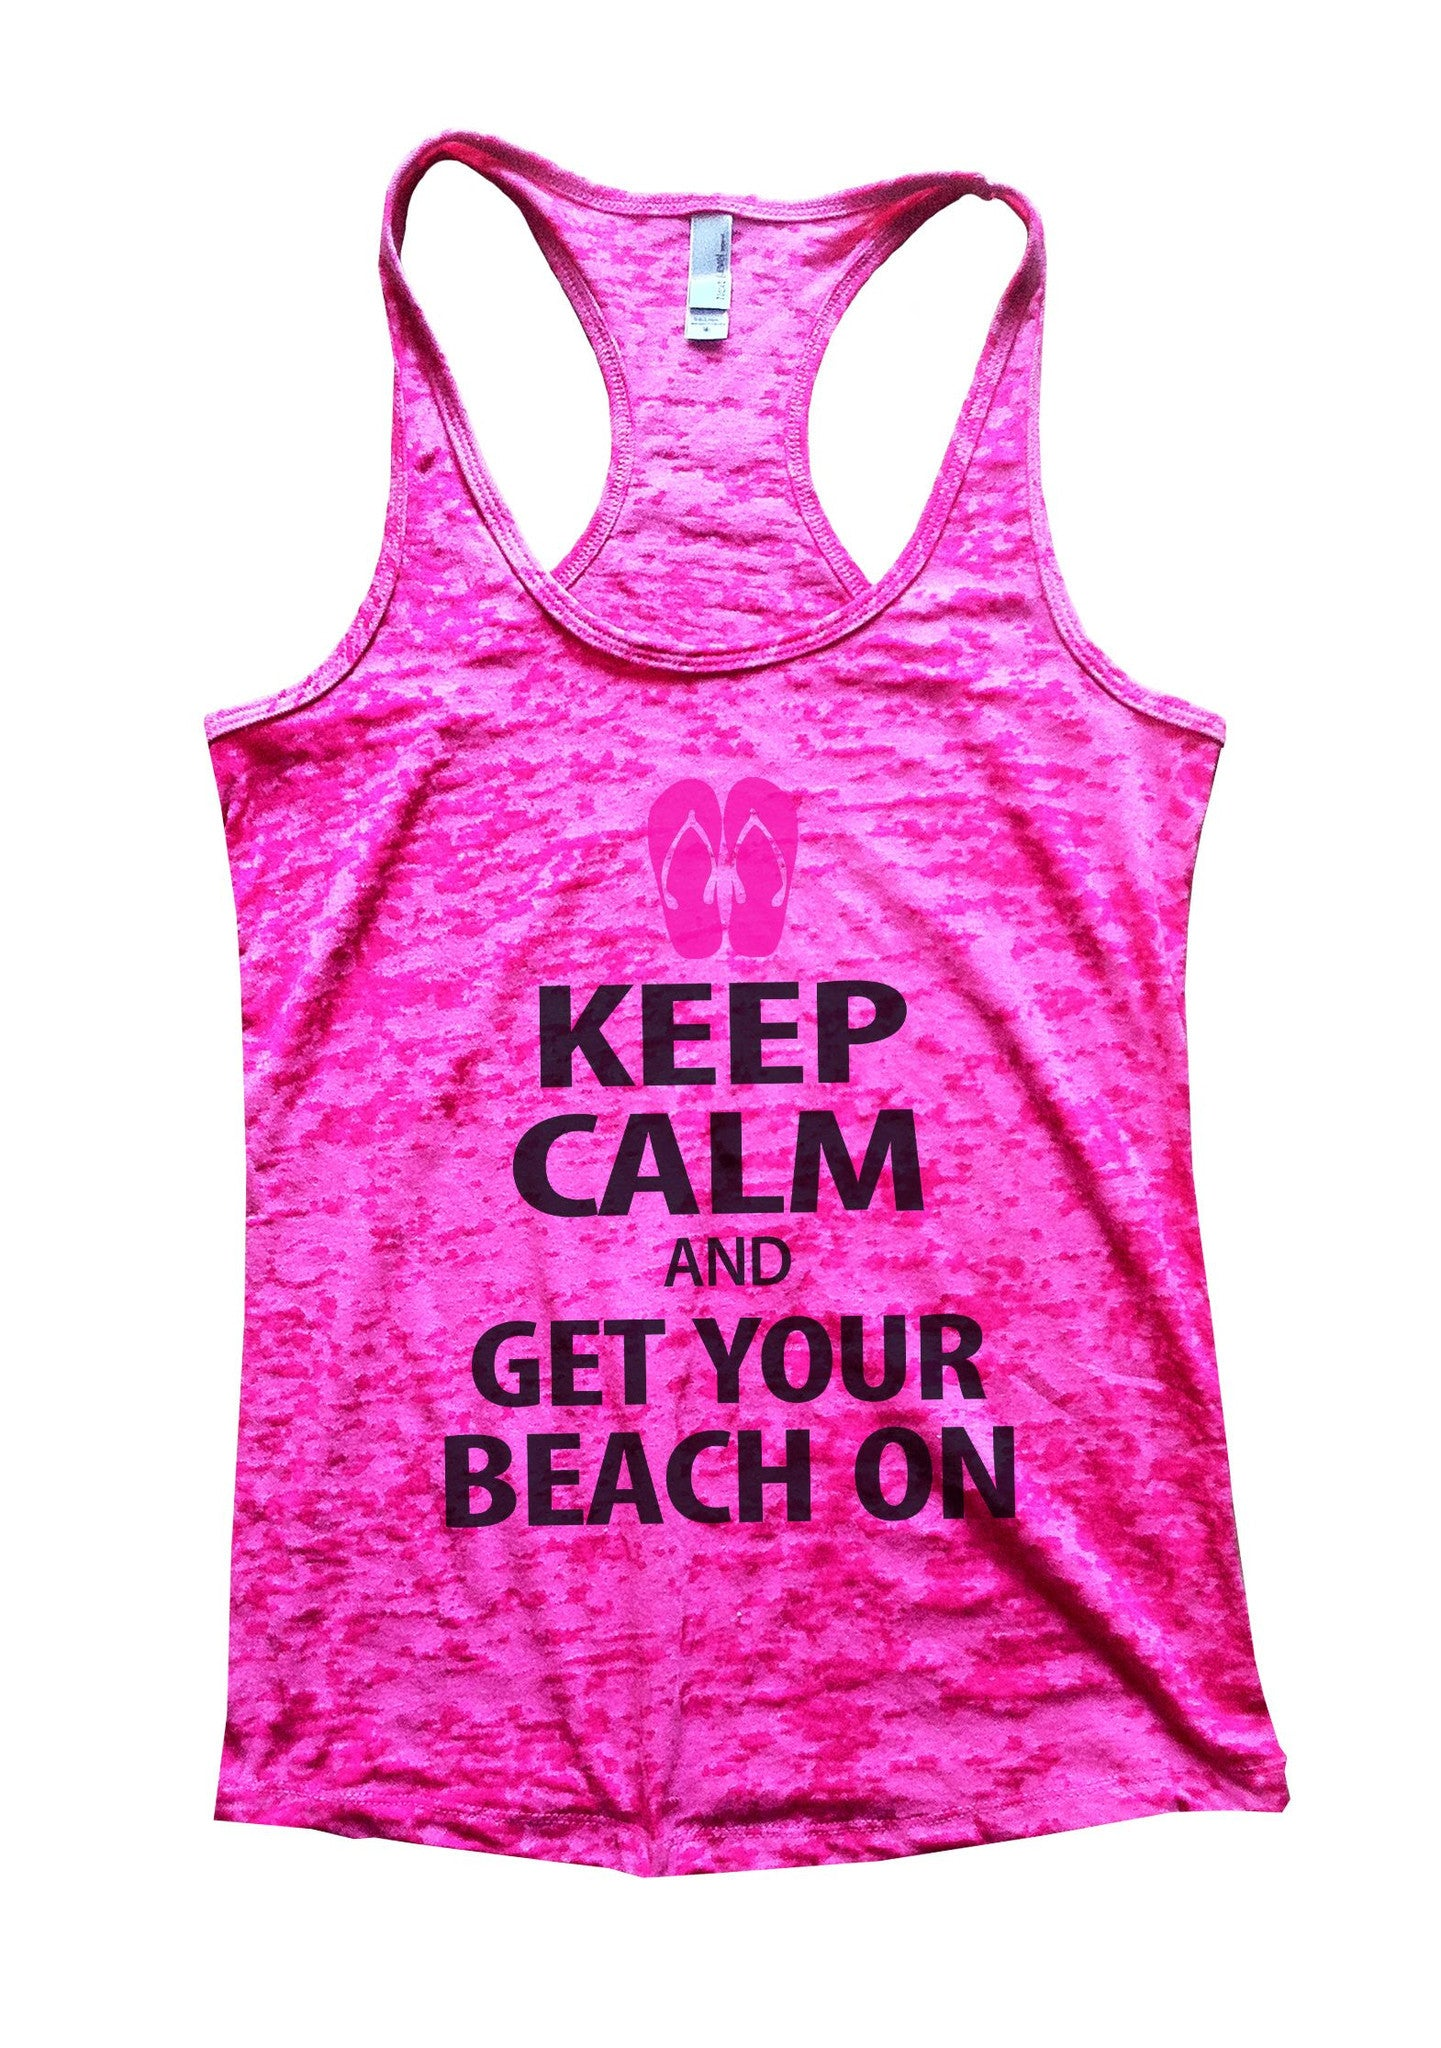 Keep Calm And Get Your Beach On Burnout Tank Top By BurnoutTankTops.com - 550 - Funny Shirts Tank Tops Burnouts and Triblends  - 5